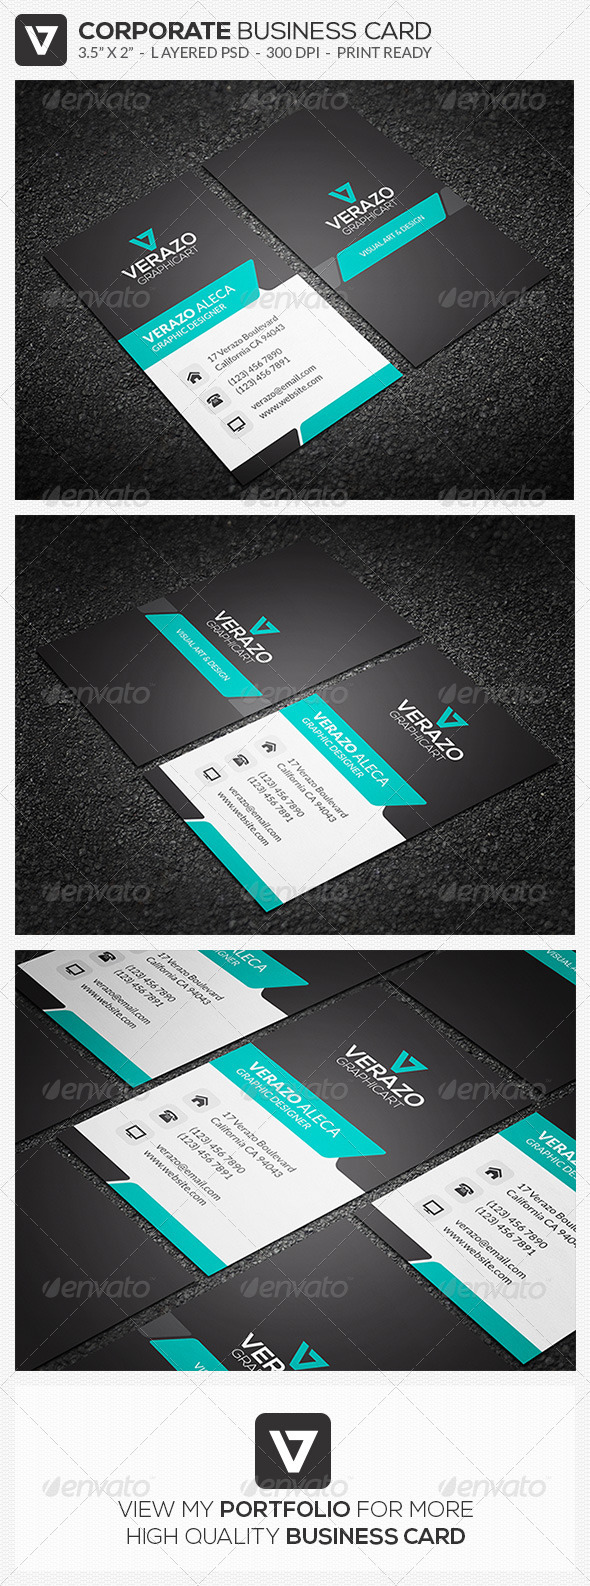 GraphicRiver Modern Corporate Business Card 40 8014659